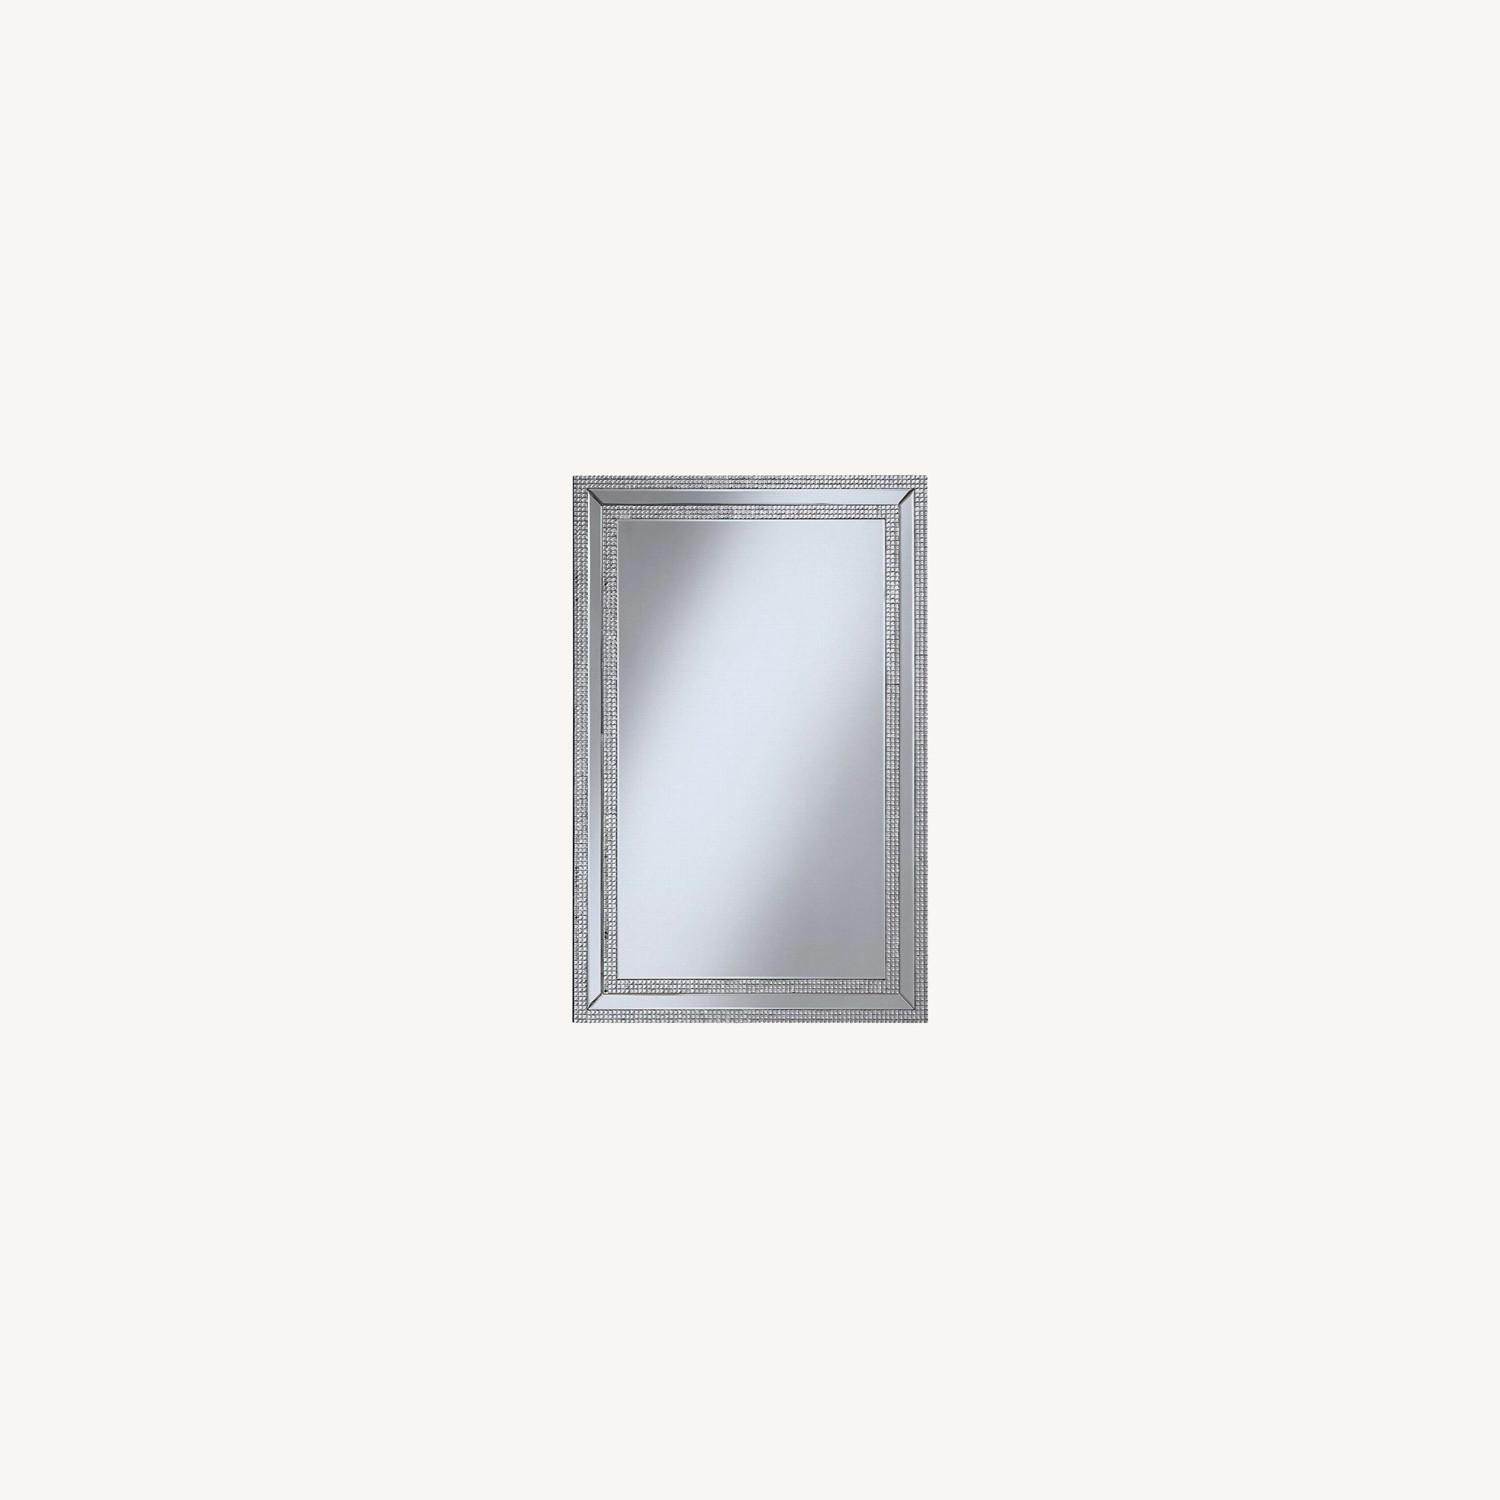 Wall Mirror In Clear Finish W/ Rows of Jewels - image-3